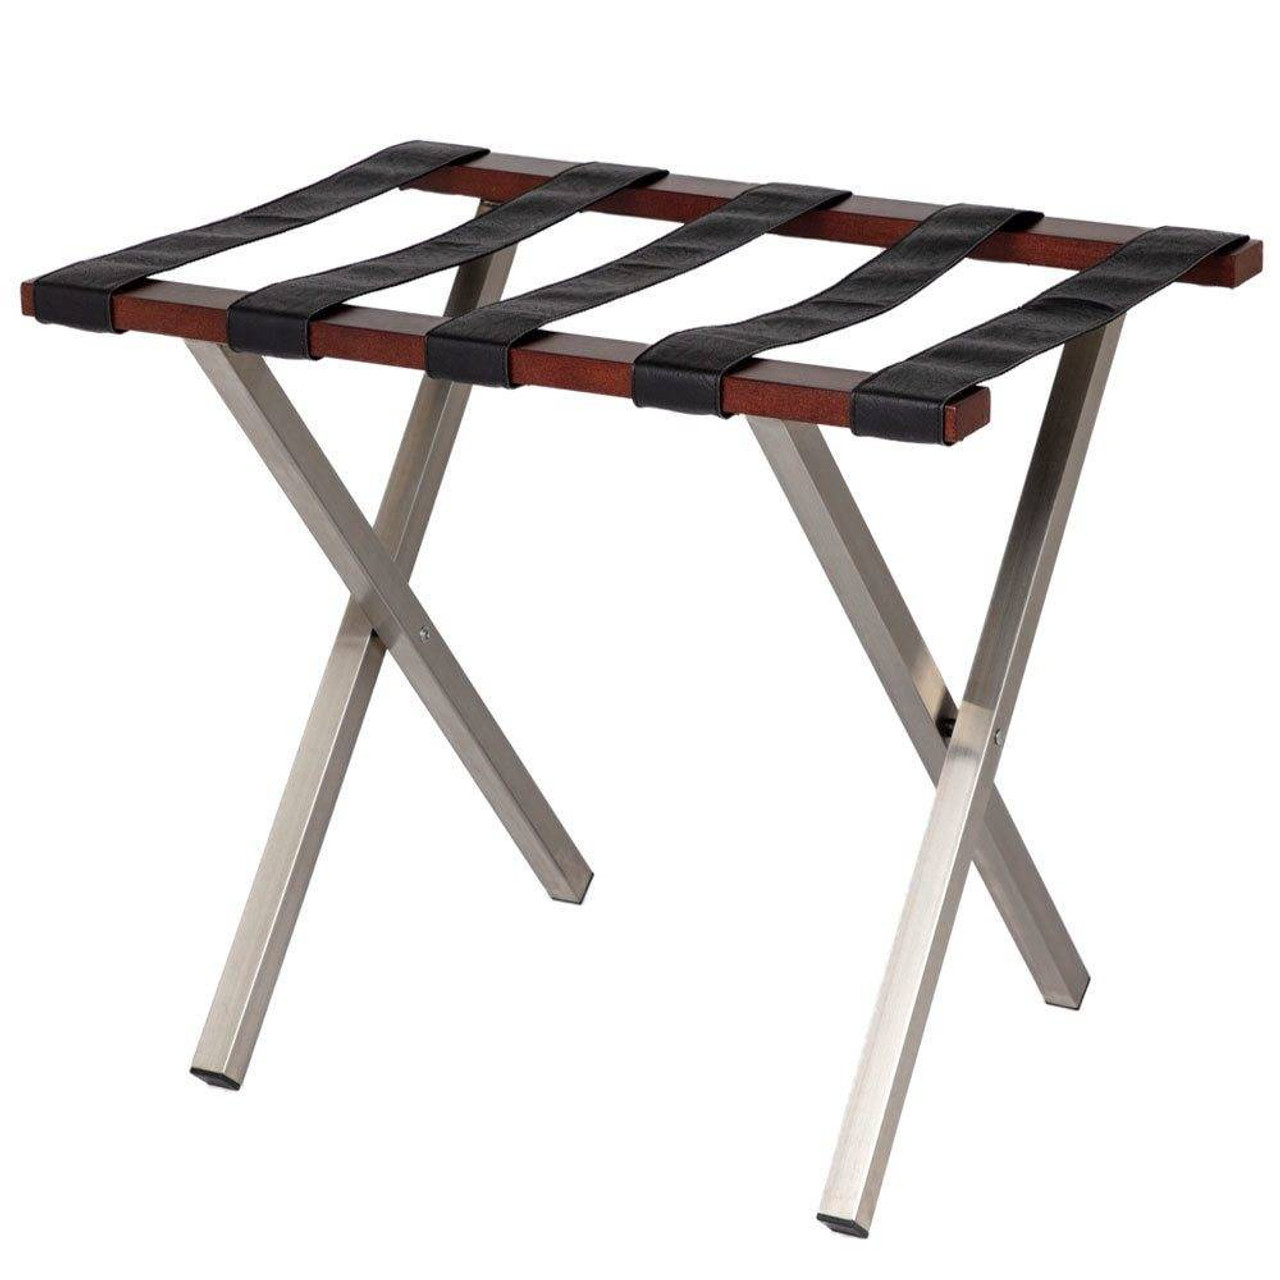 HOSPITALITY 1 SOURCE HOSPITALITY 1 SOURCE or UPTOWN LUGGAGE RACK or BLACK STRAPS or WALNUT FINISH or 4 PER CASE